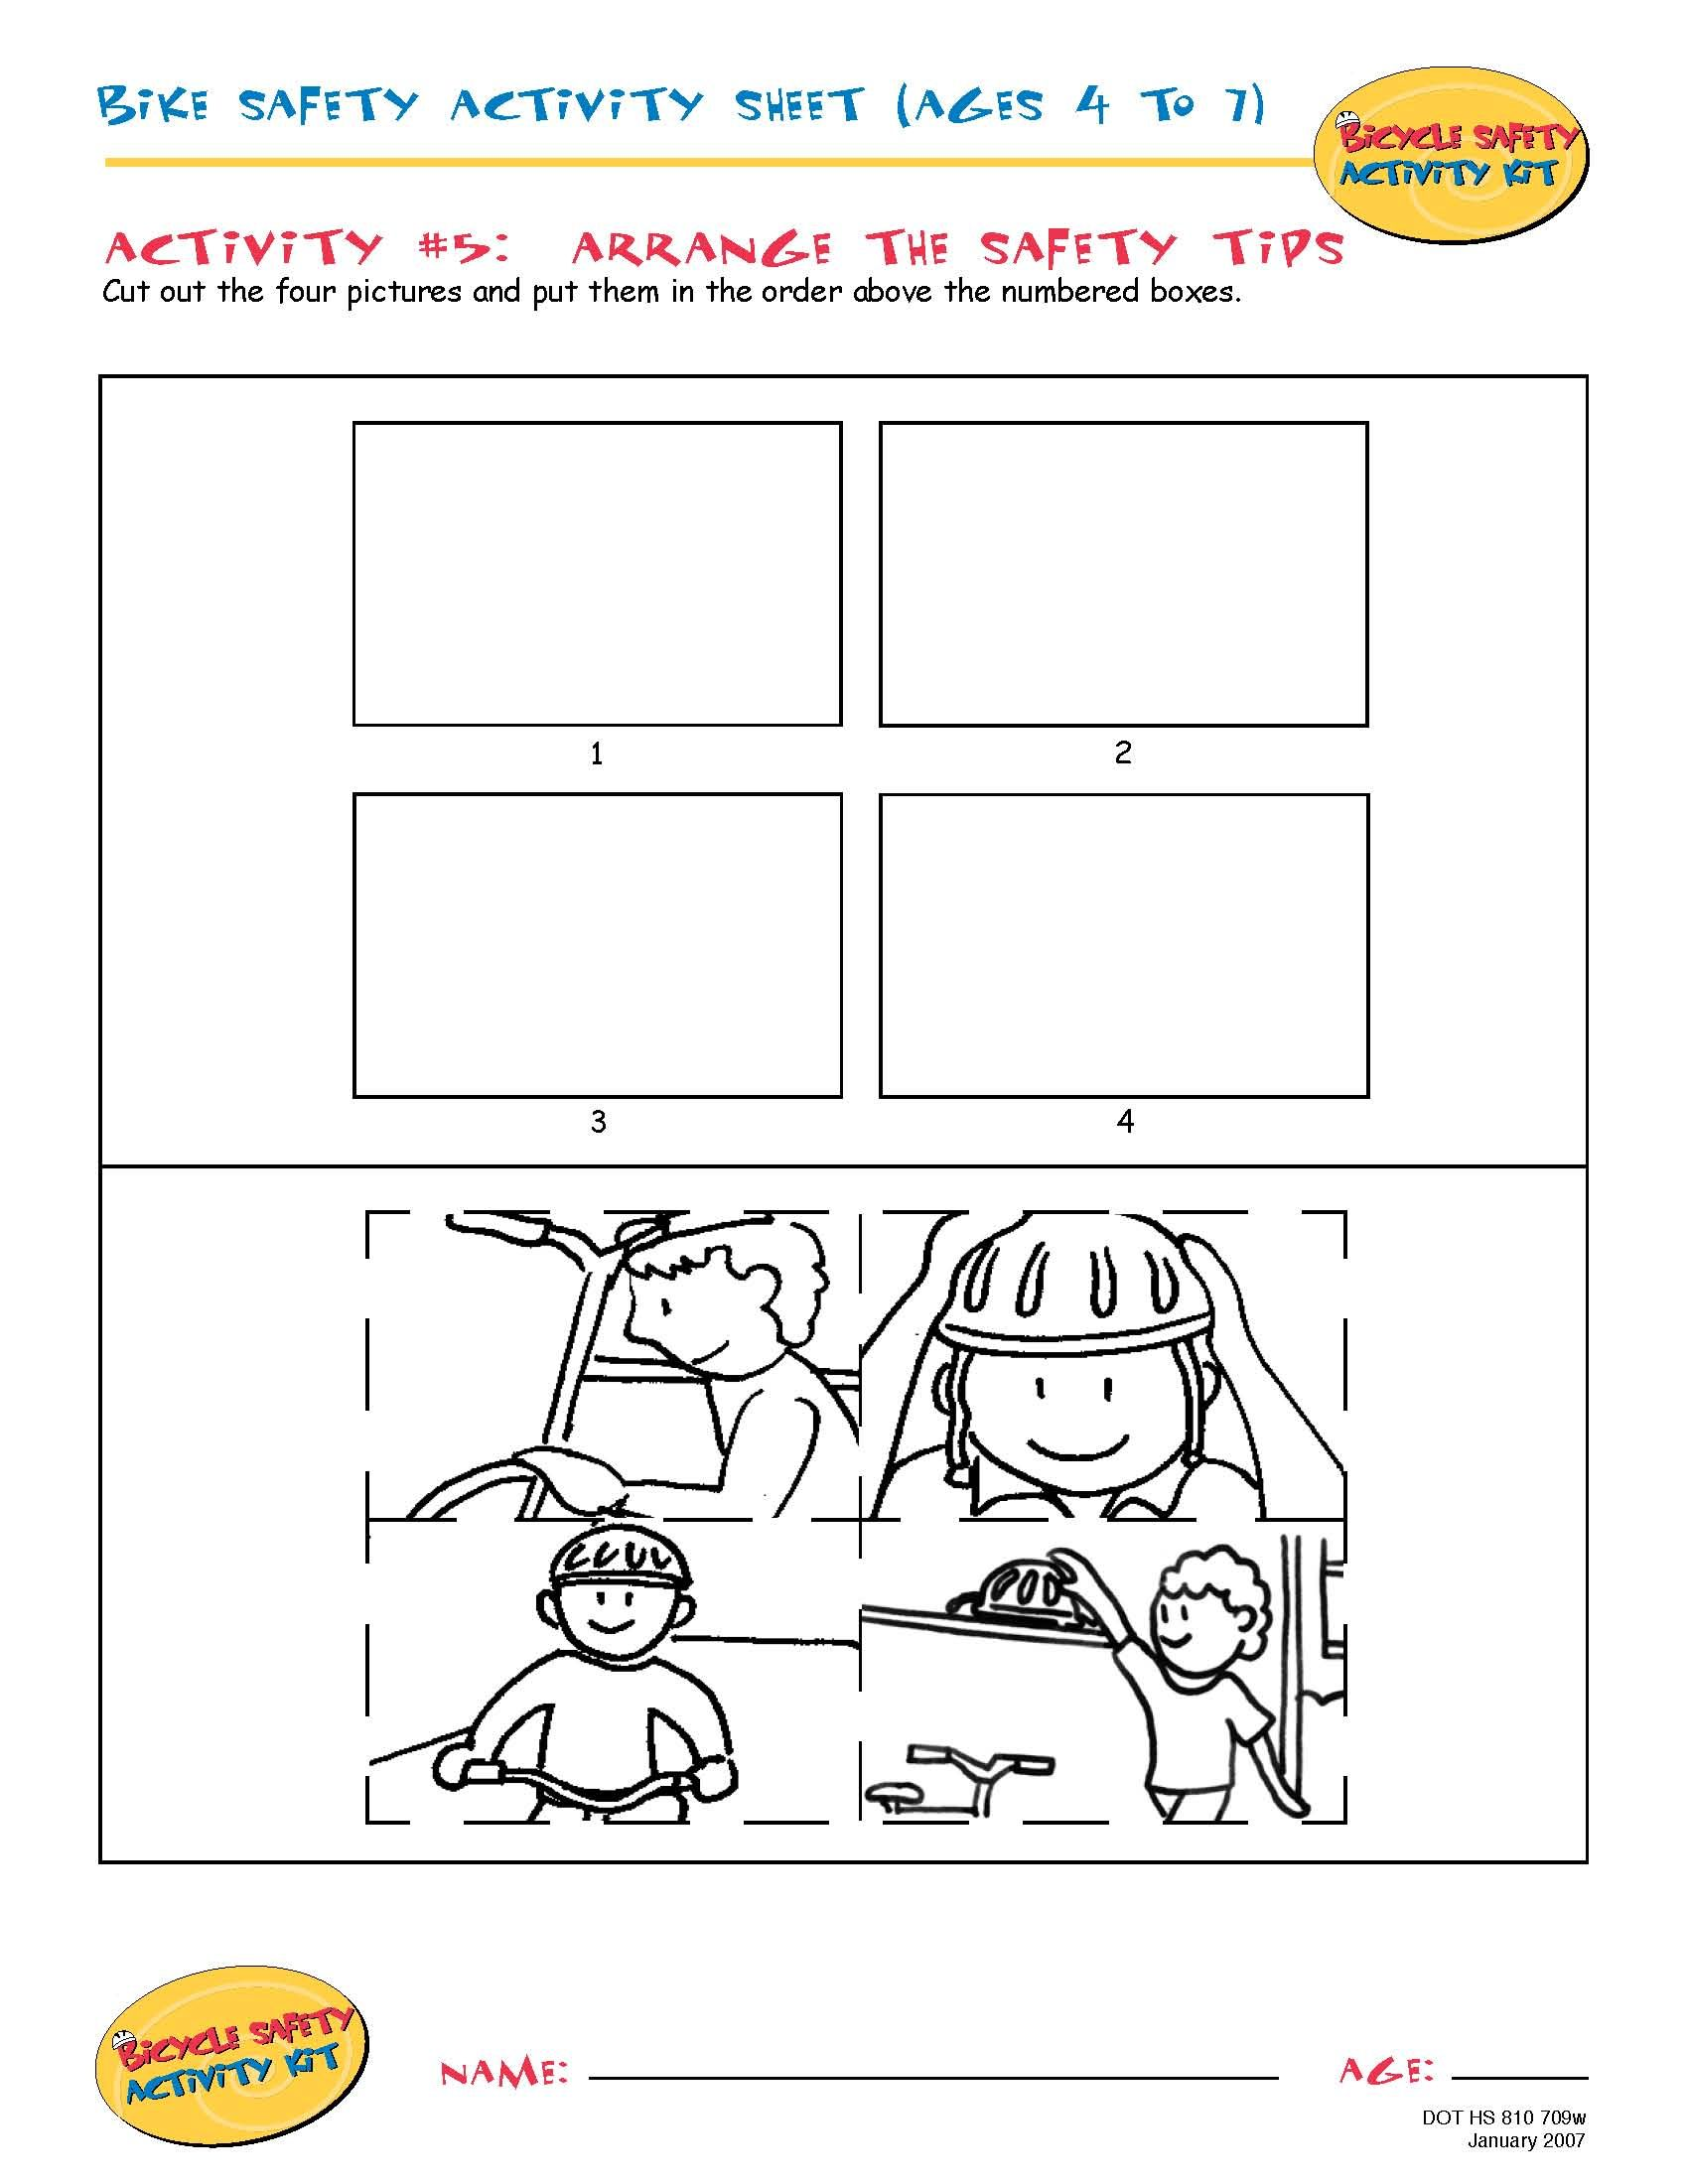 Bike Safety Activity Sheet Ages 4 To 7 Arrange The